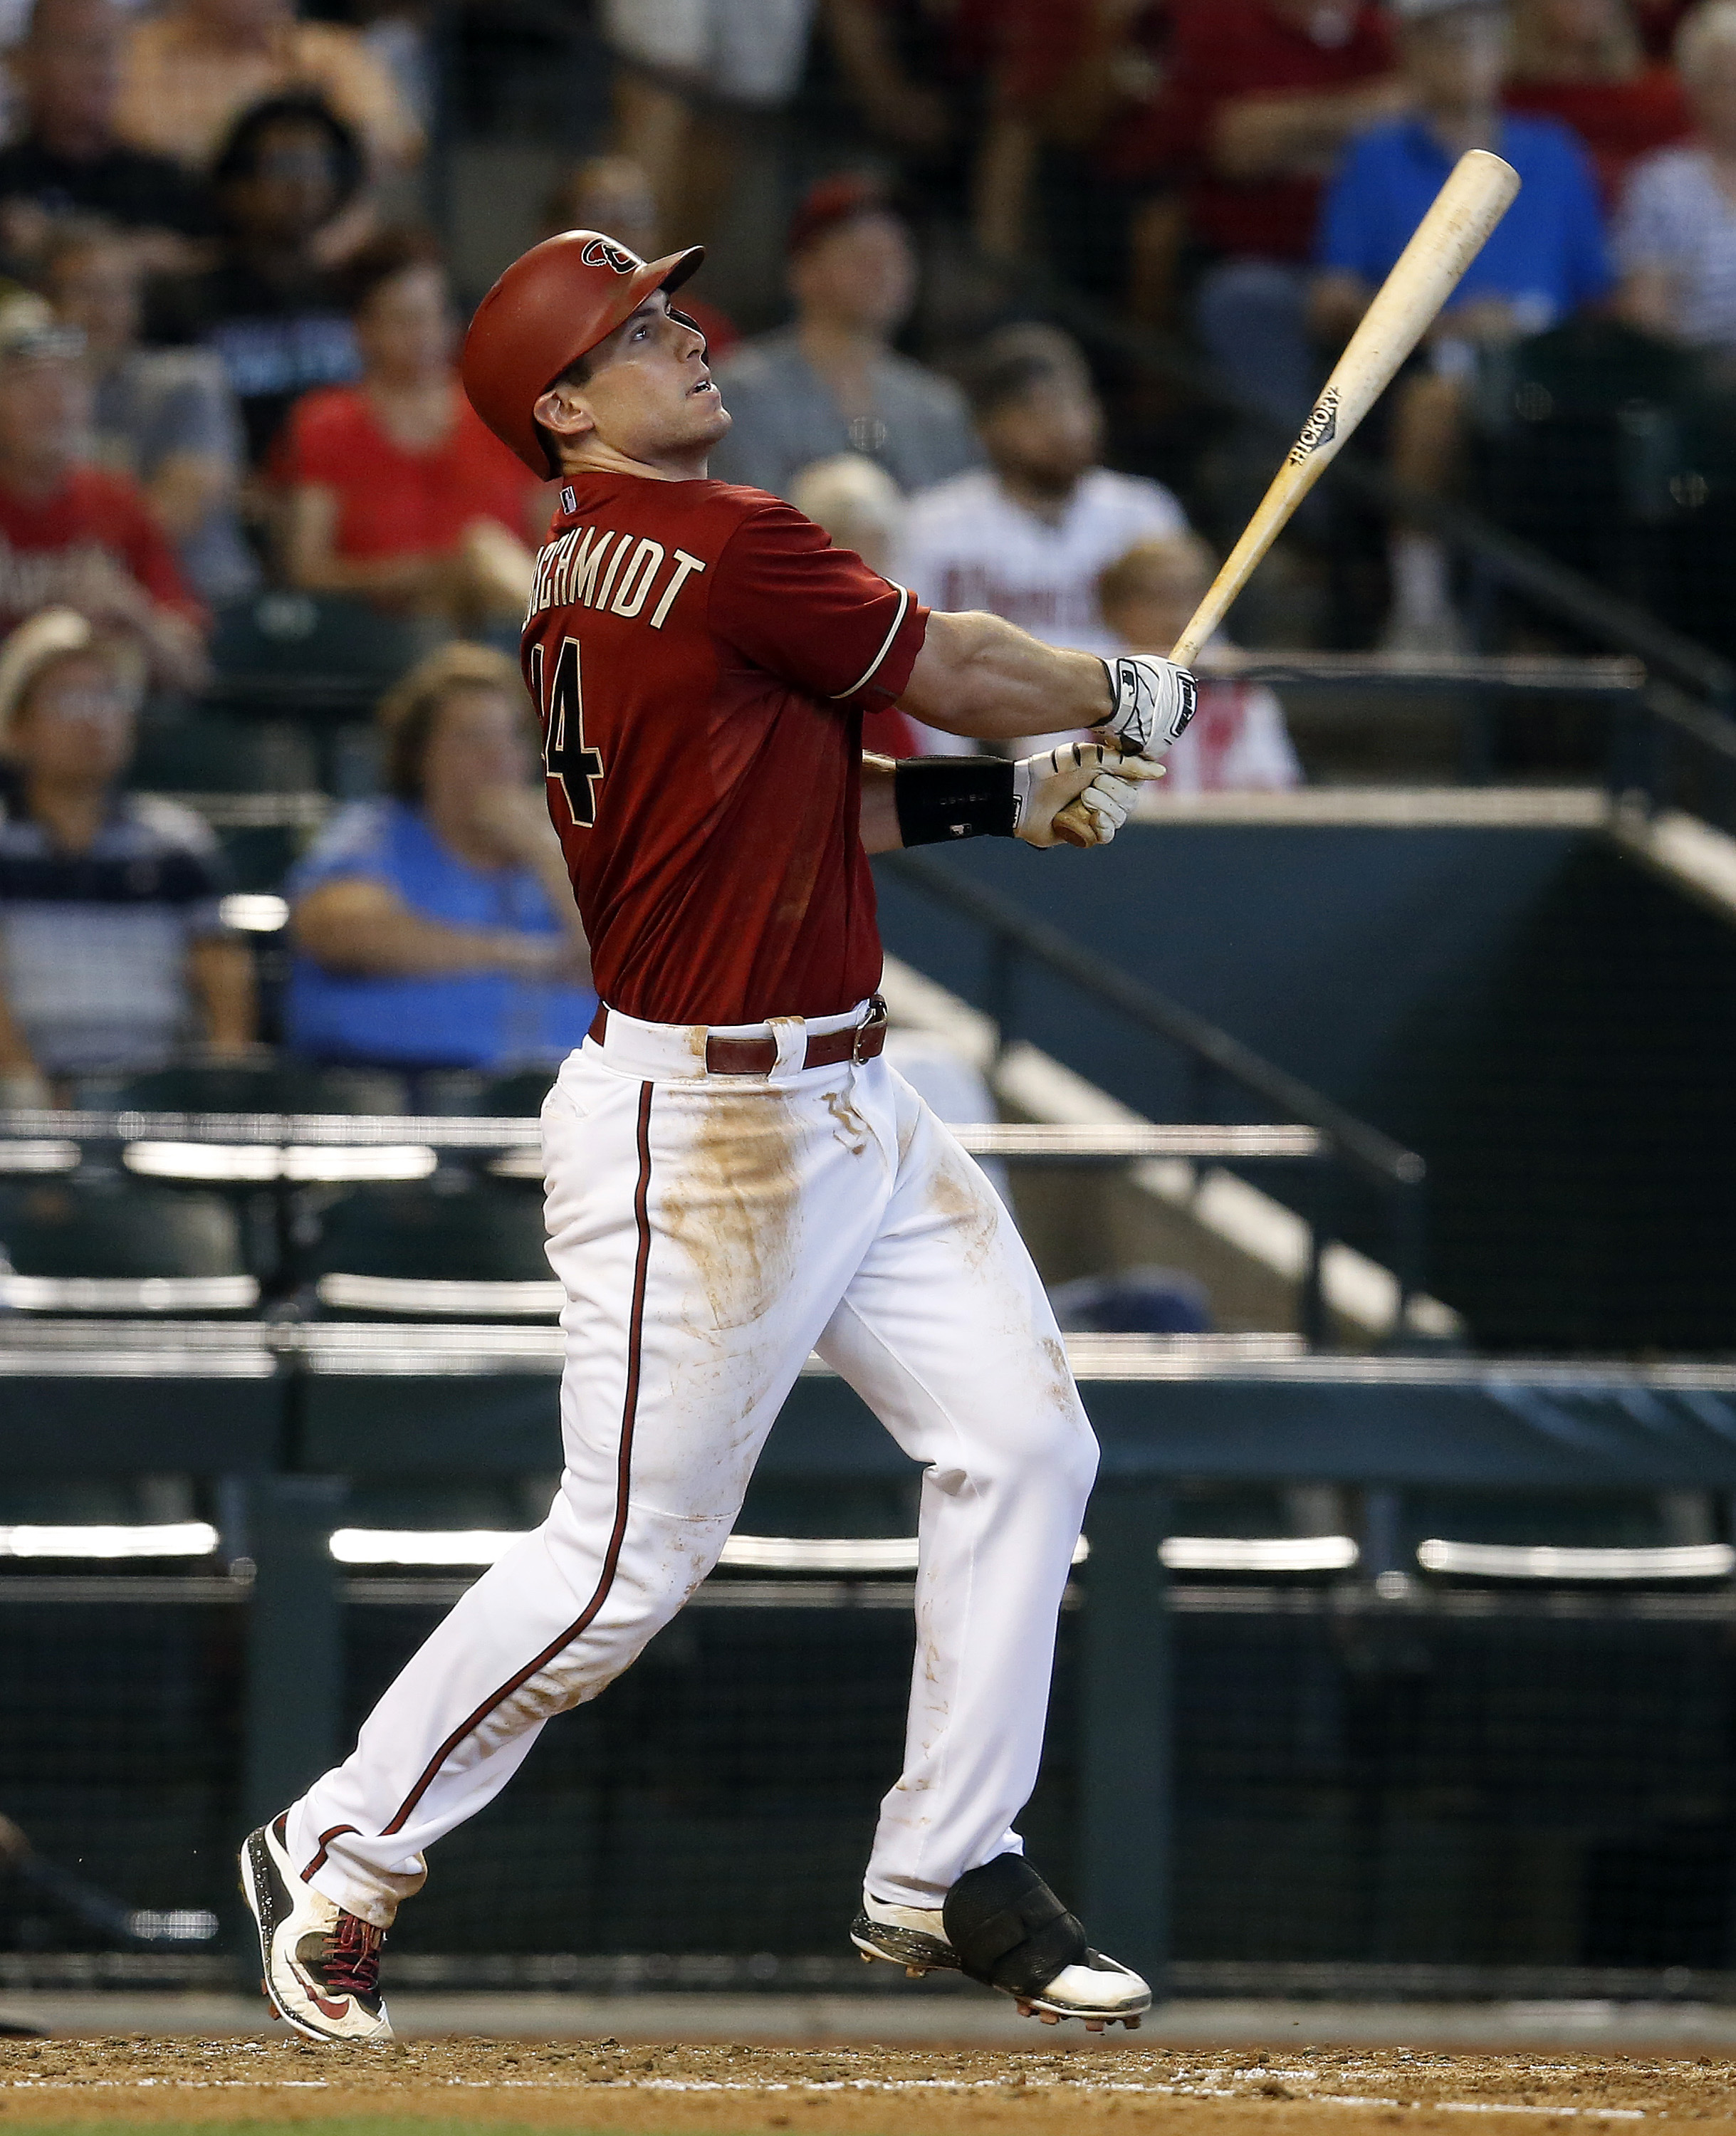 Arizona Diamondbacks' Paul Goldschmidt hits a two-run home run against the Chicago Cubs in the third inning during a baseball game, Sunday, May 24, 2015, in Phoenix. (AP Photo/Rick Scuteri)